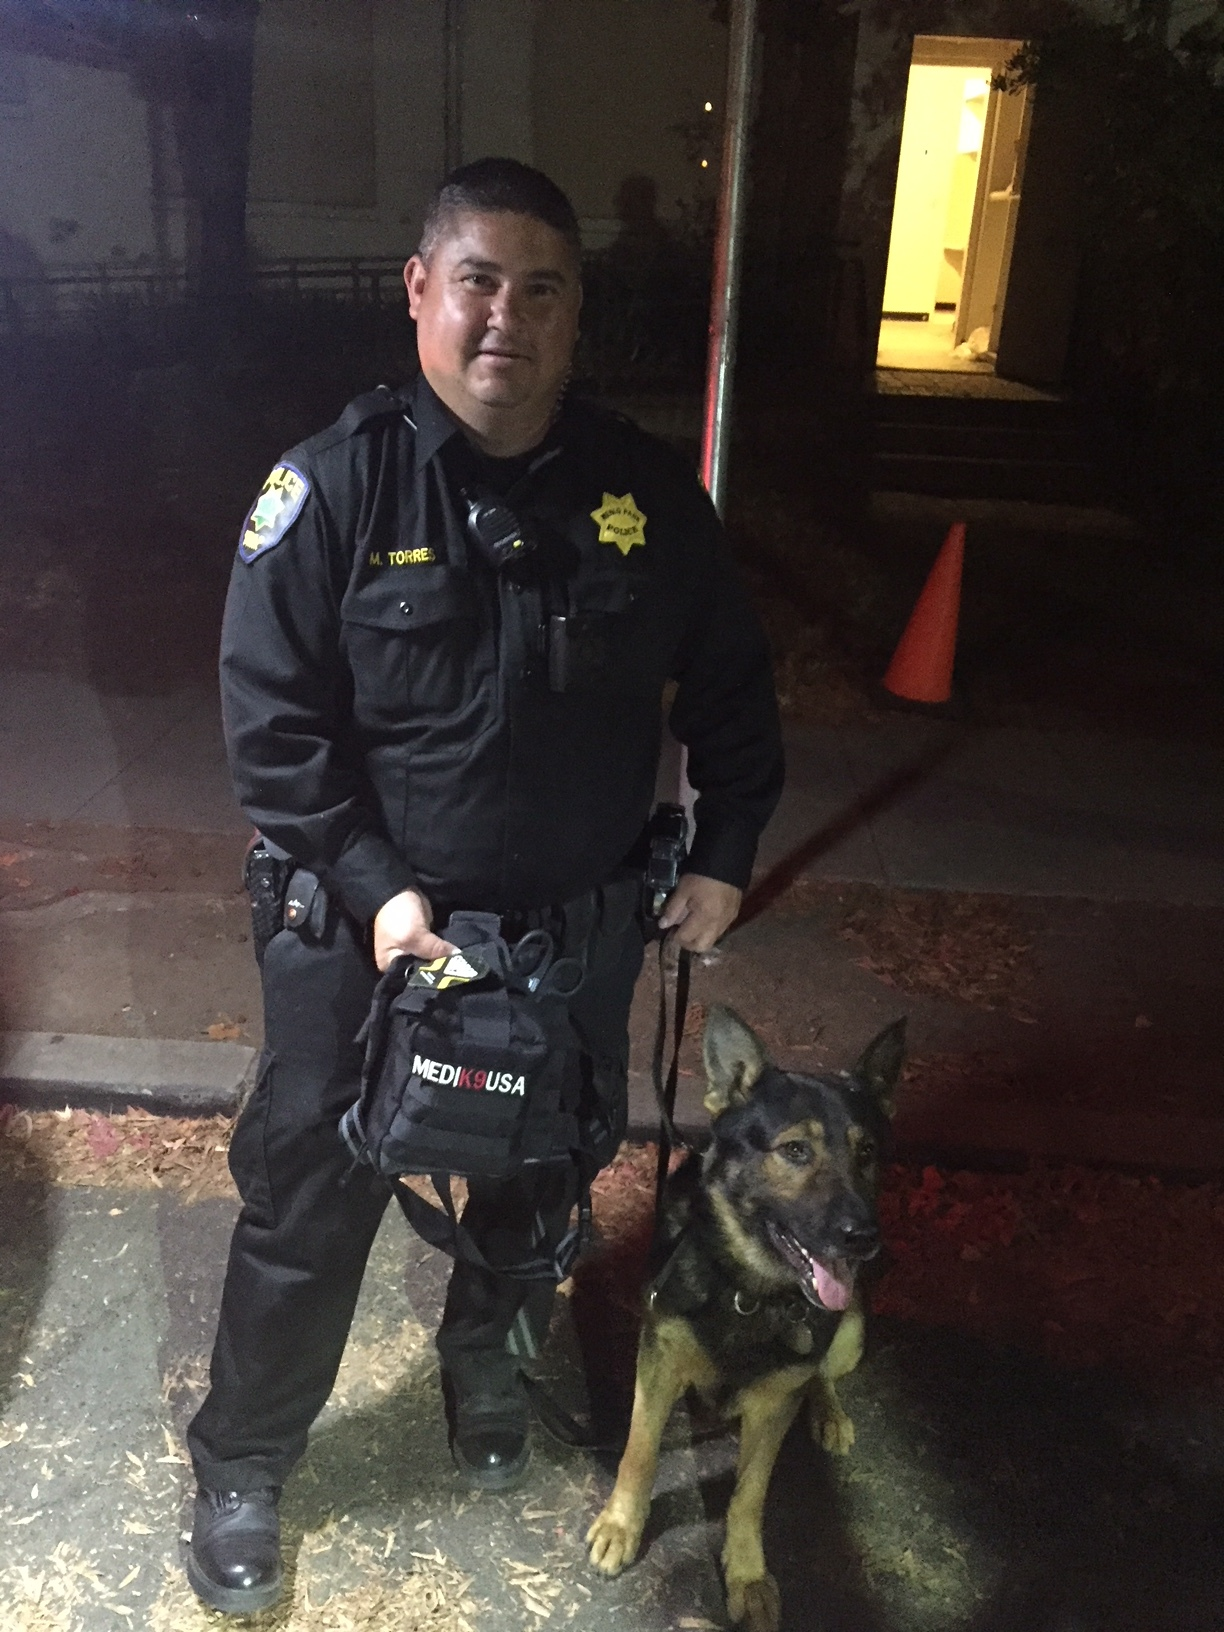 9/18/18 - K9 Hardy of the Menlo Park Police Department, Ca